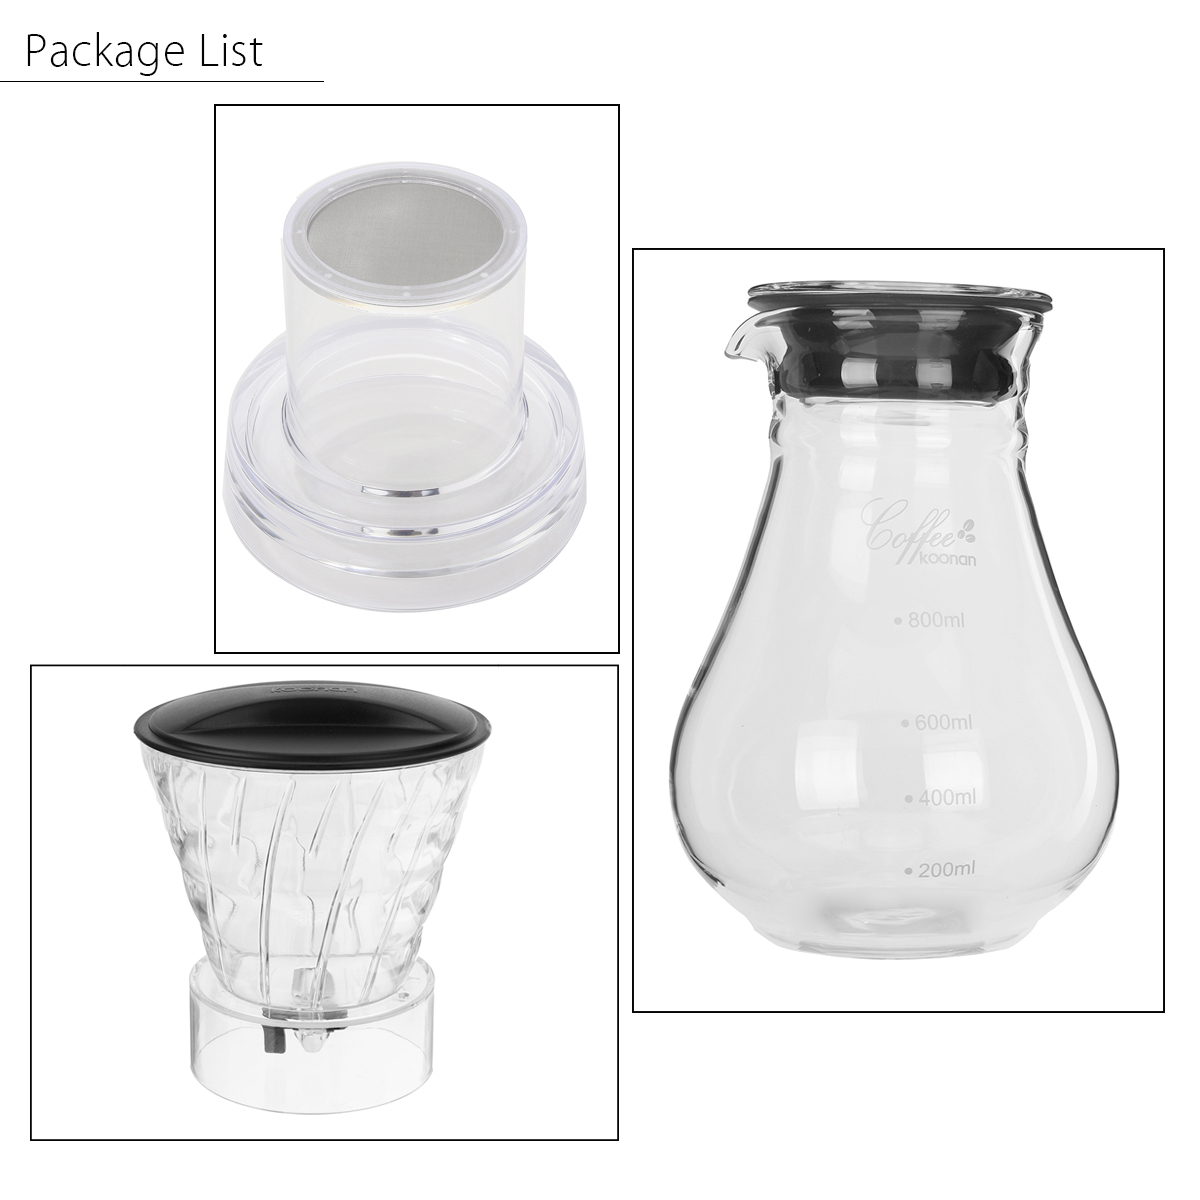 1000mL Glass Cold Iced Drip Brew Home Coffee Maker Pot Pour Over Coffee Maker